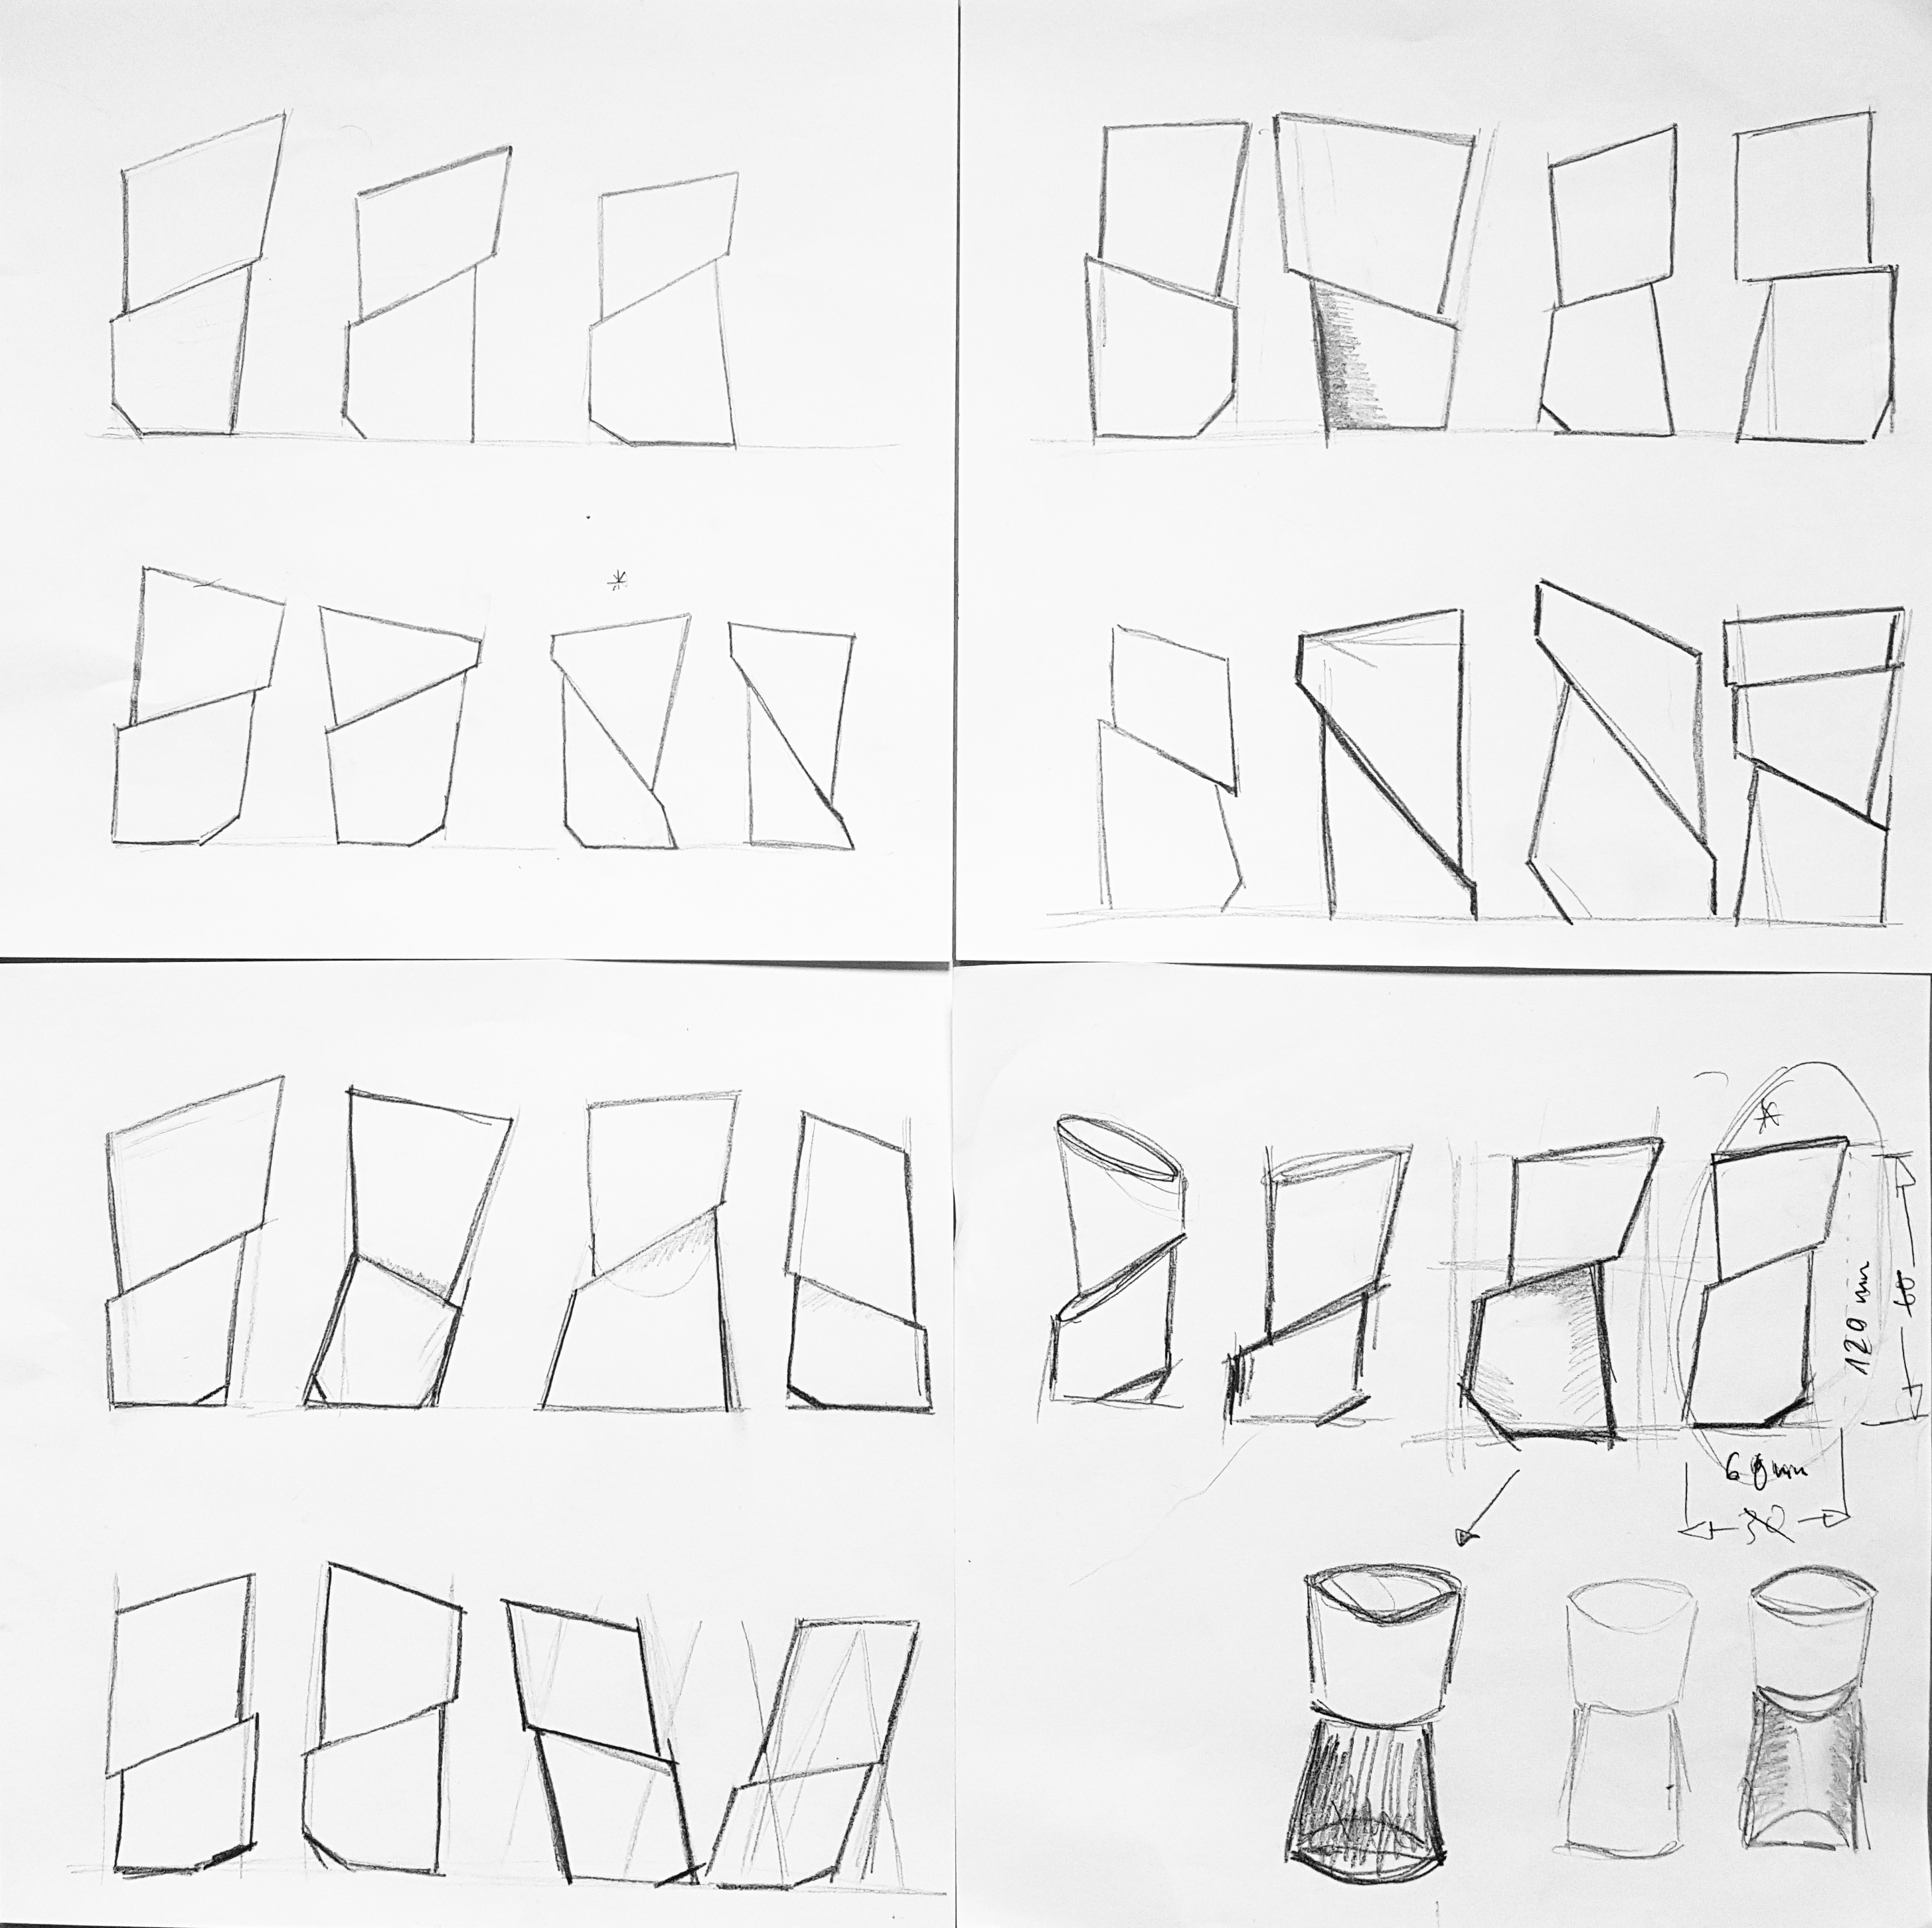 drawing1_as_identity